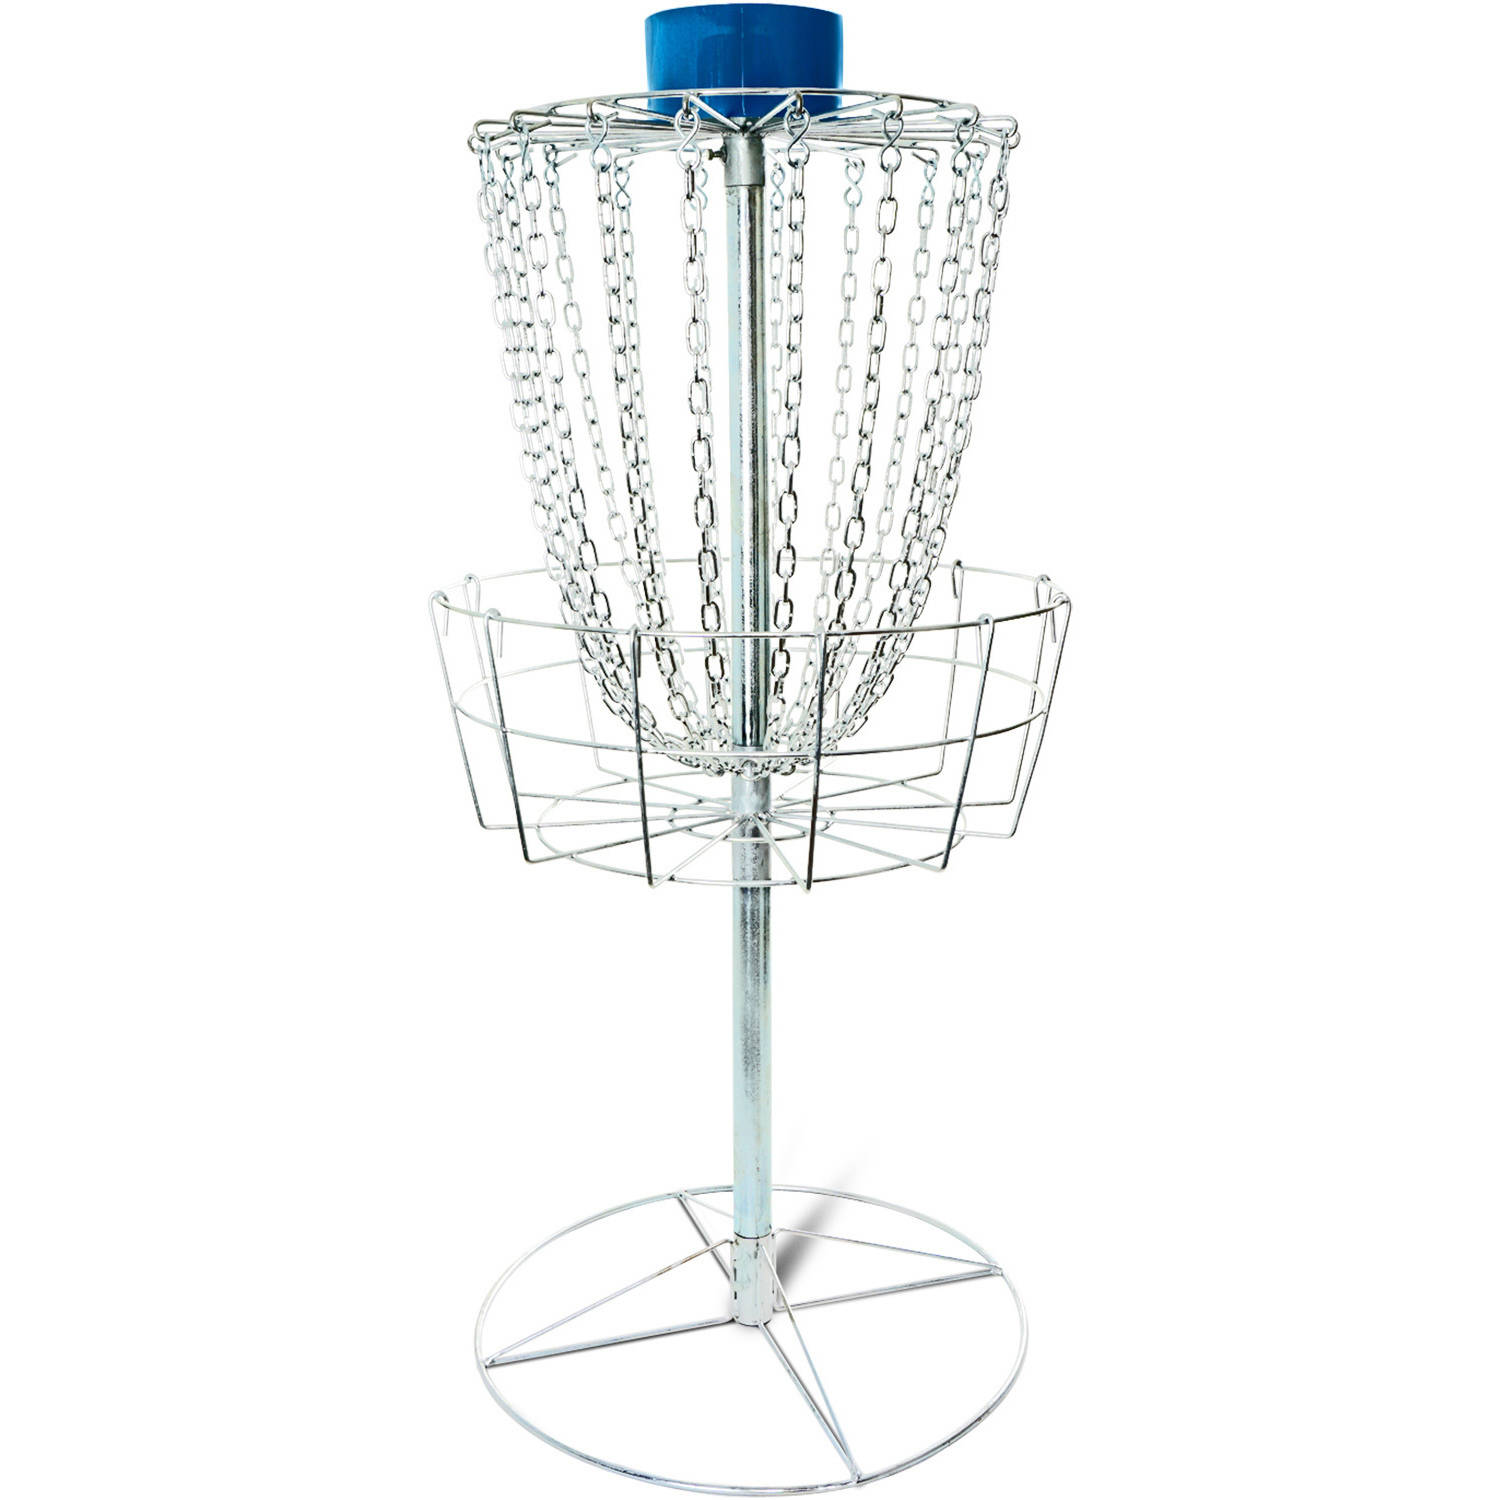 Titan Disc Golf Catcher Basket Target Portable Steel Chain Practice Frisbee by Titan Fitness